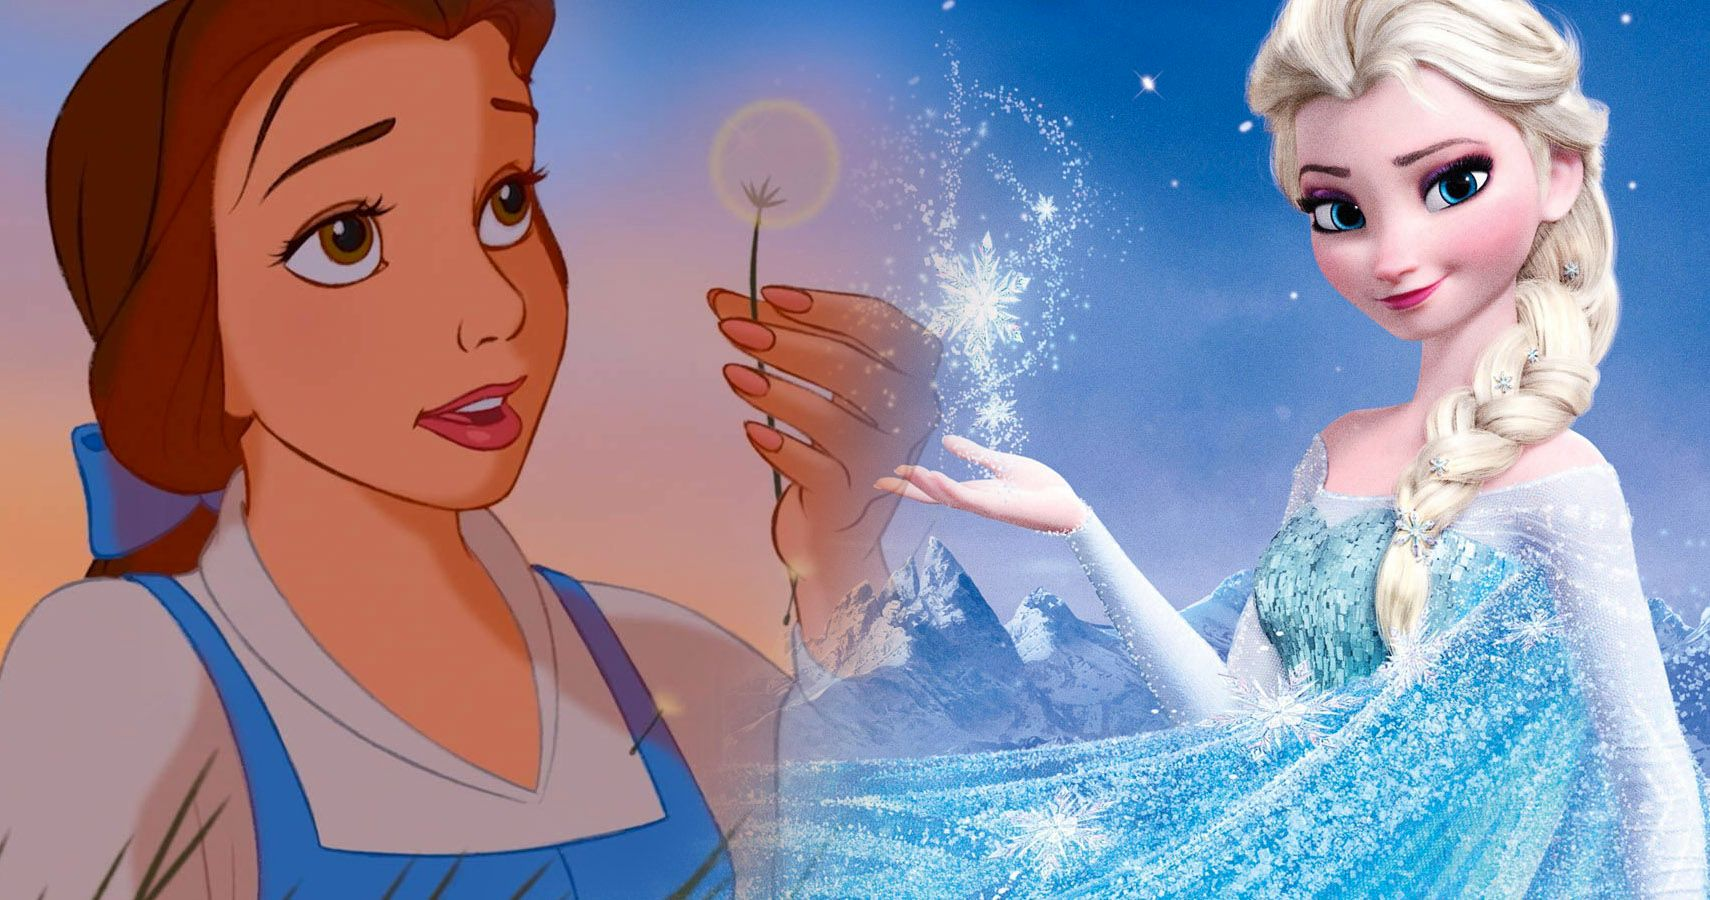 10 Highest-Grossing Disney Princess Movies Of All Time